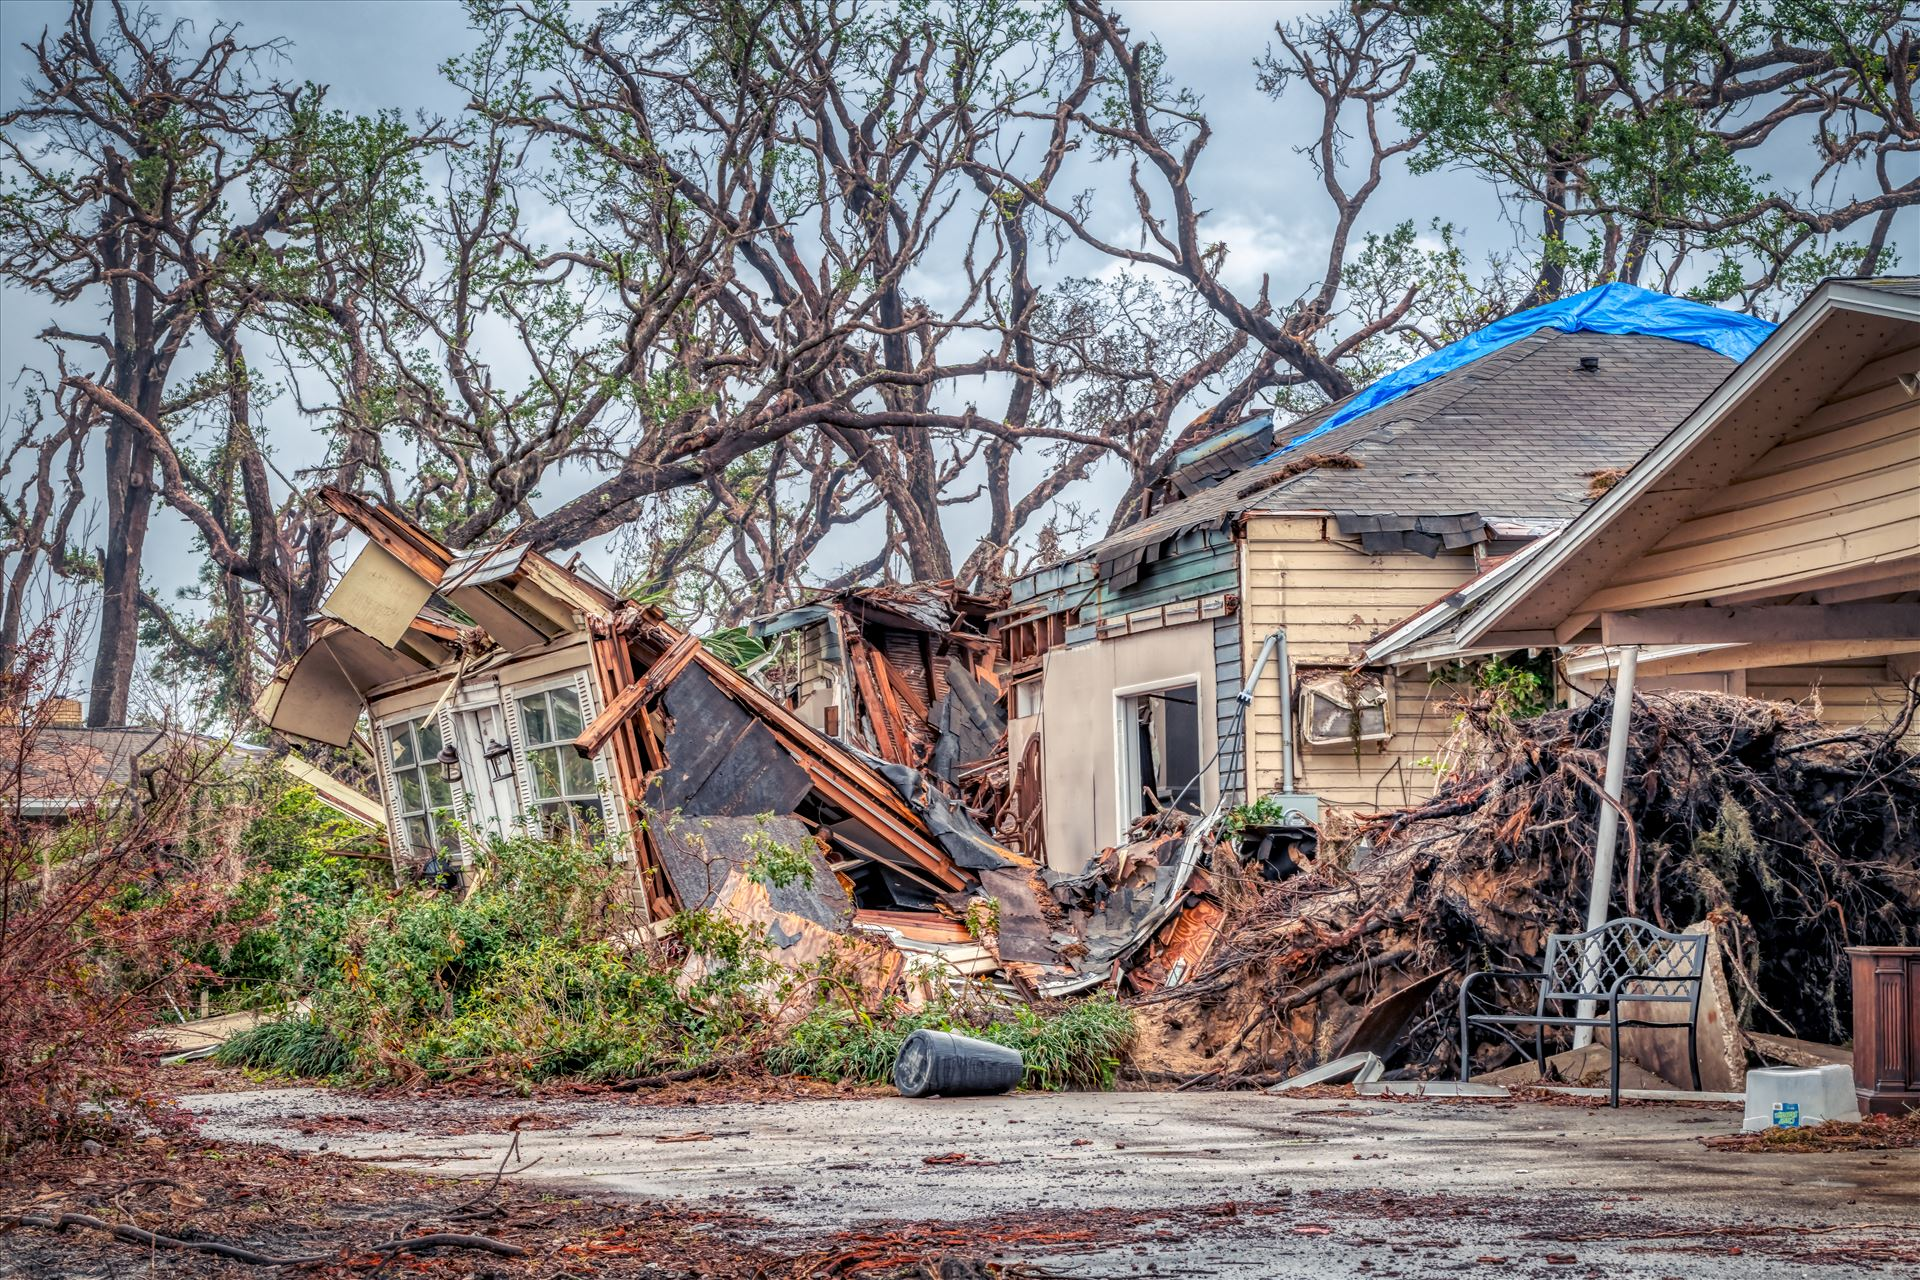 House destroyed by hurricane Michael-.jpg  by Terry Kelly Photography